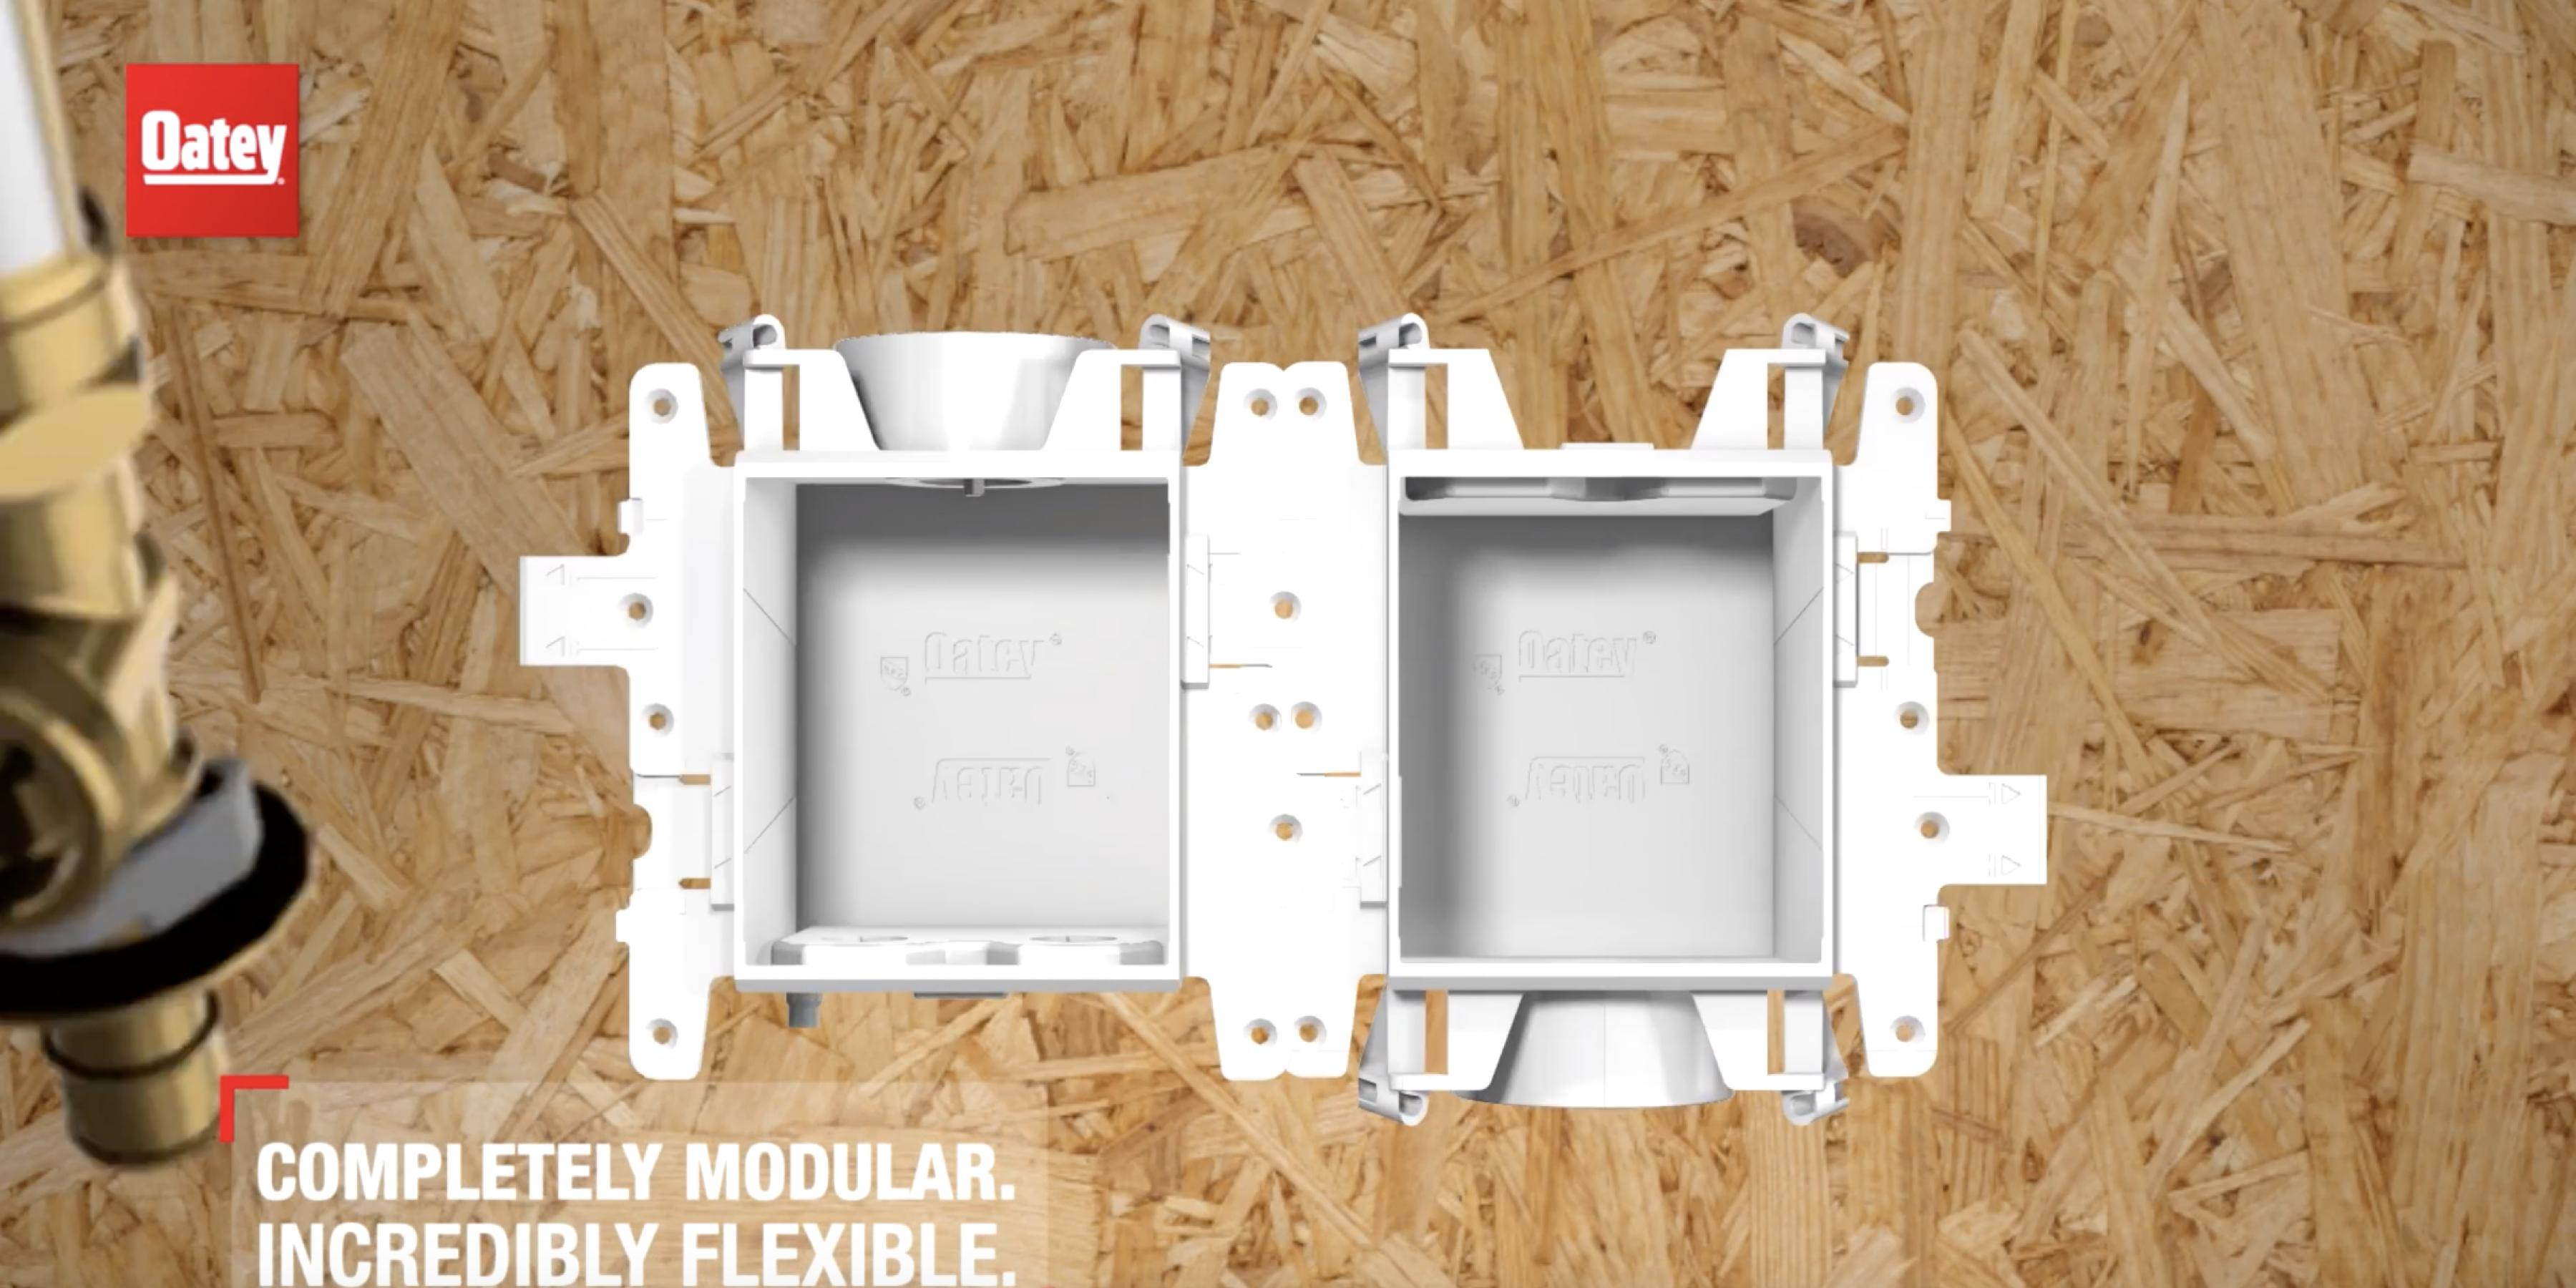 Oatey Moda - Modular Supply Box System